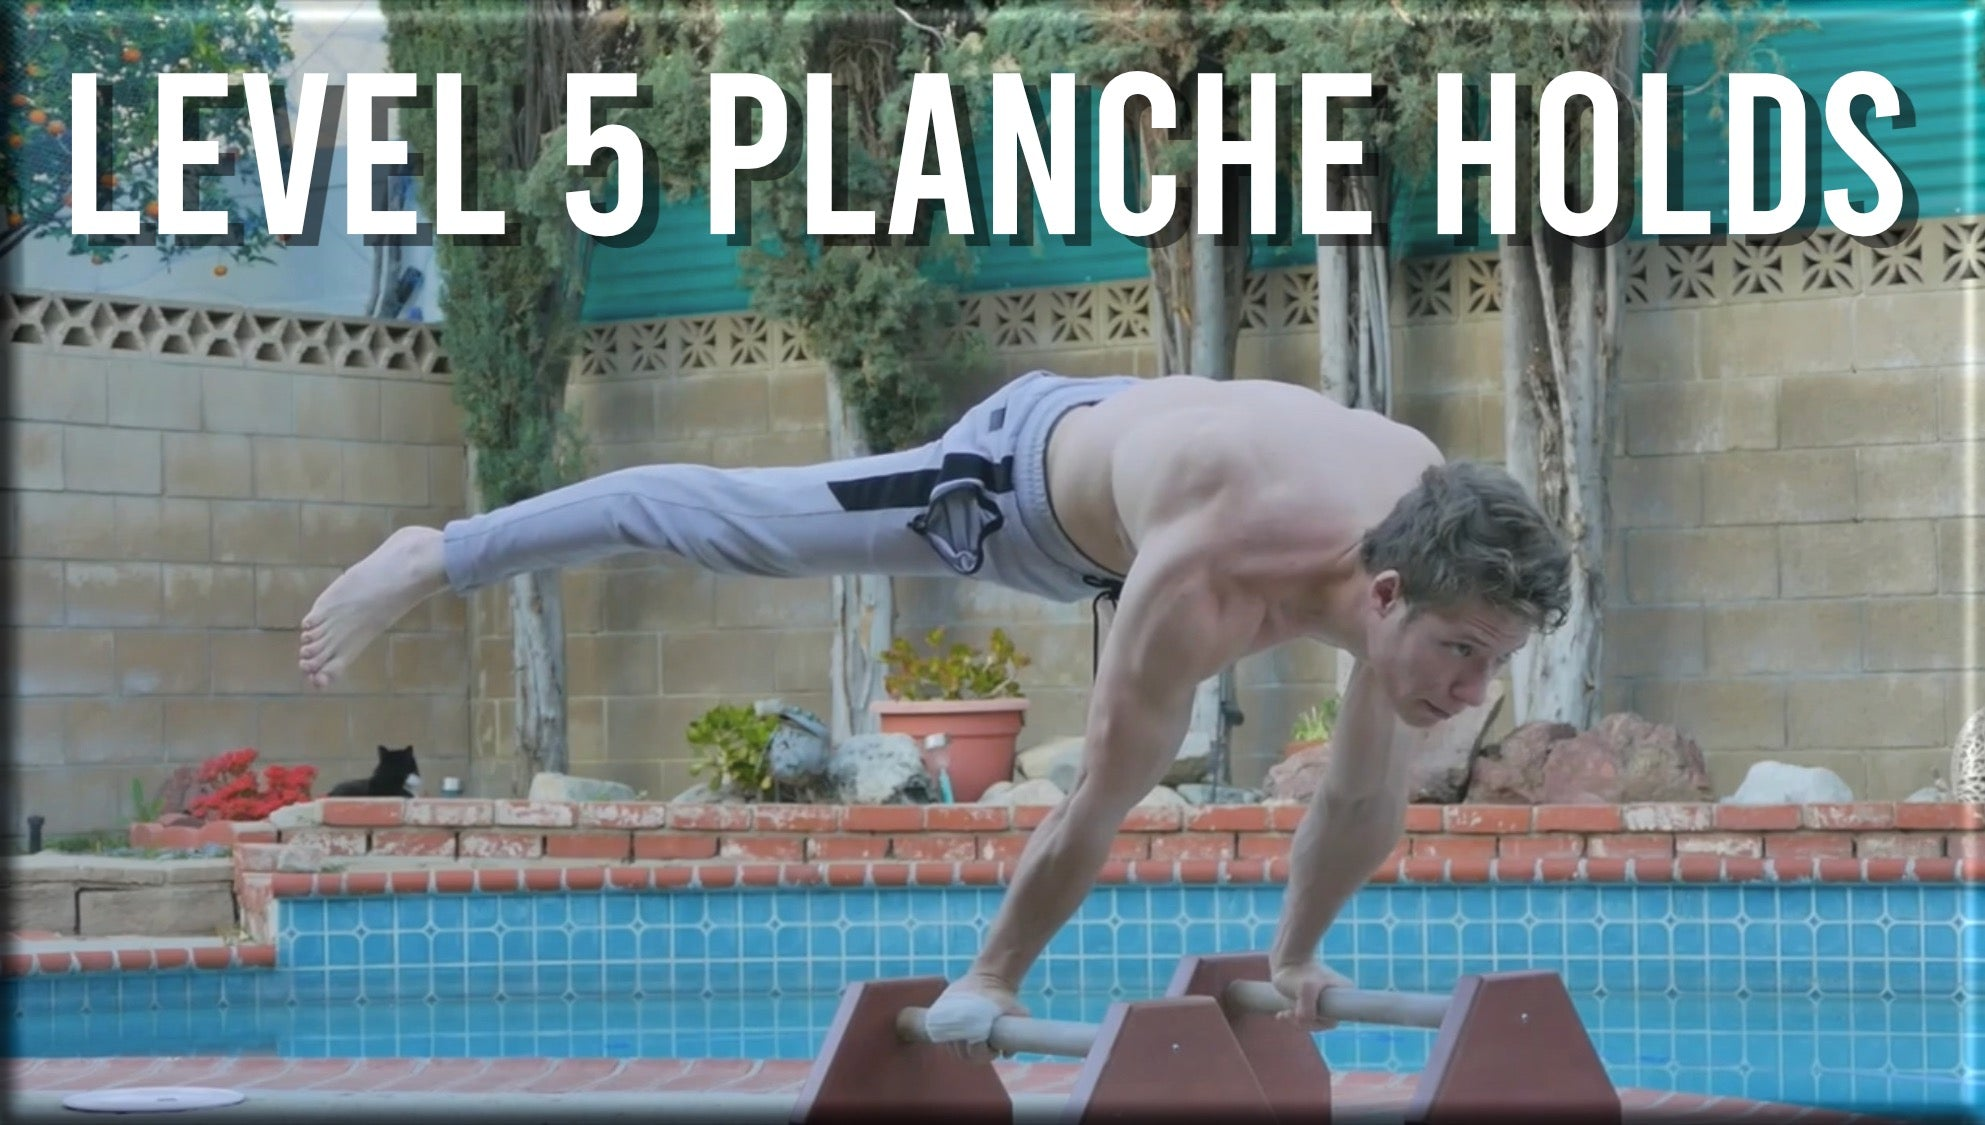 Level 5 Planche Holds